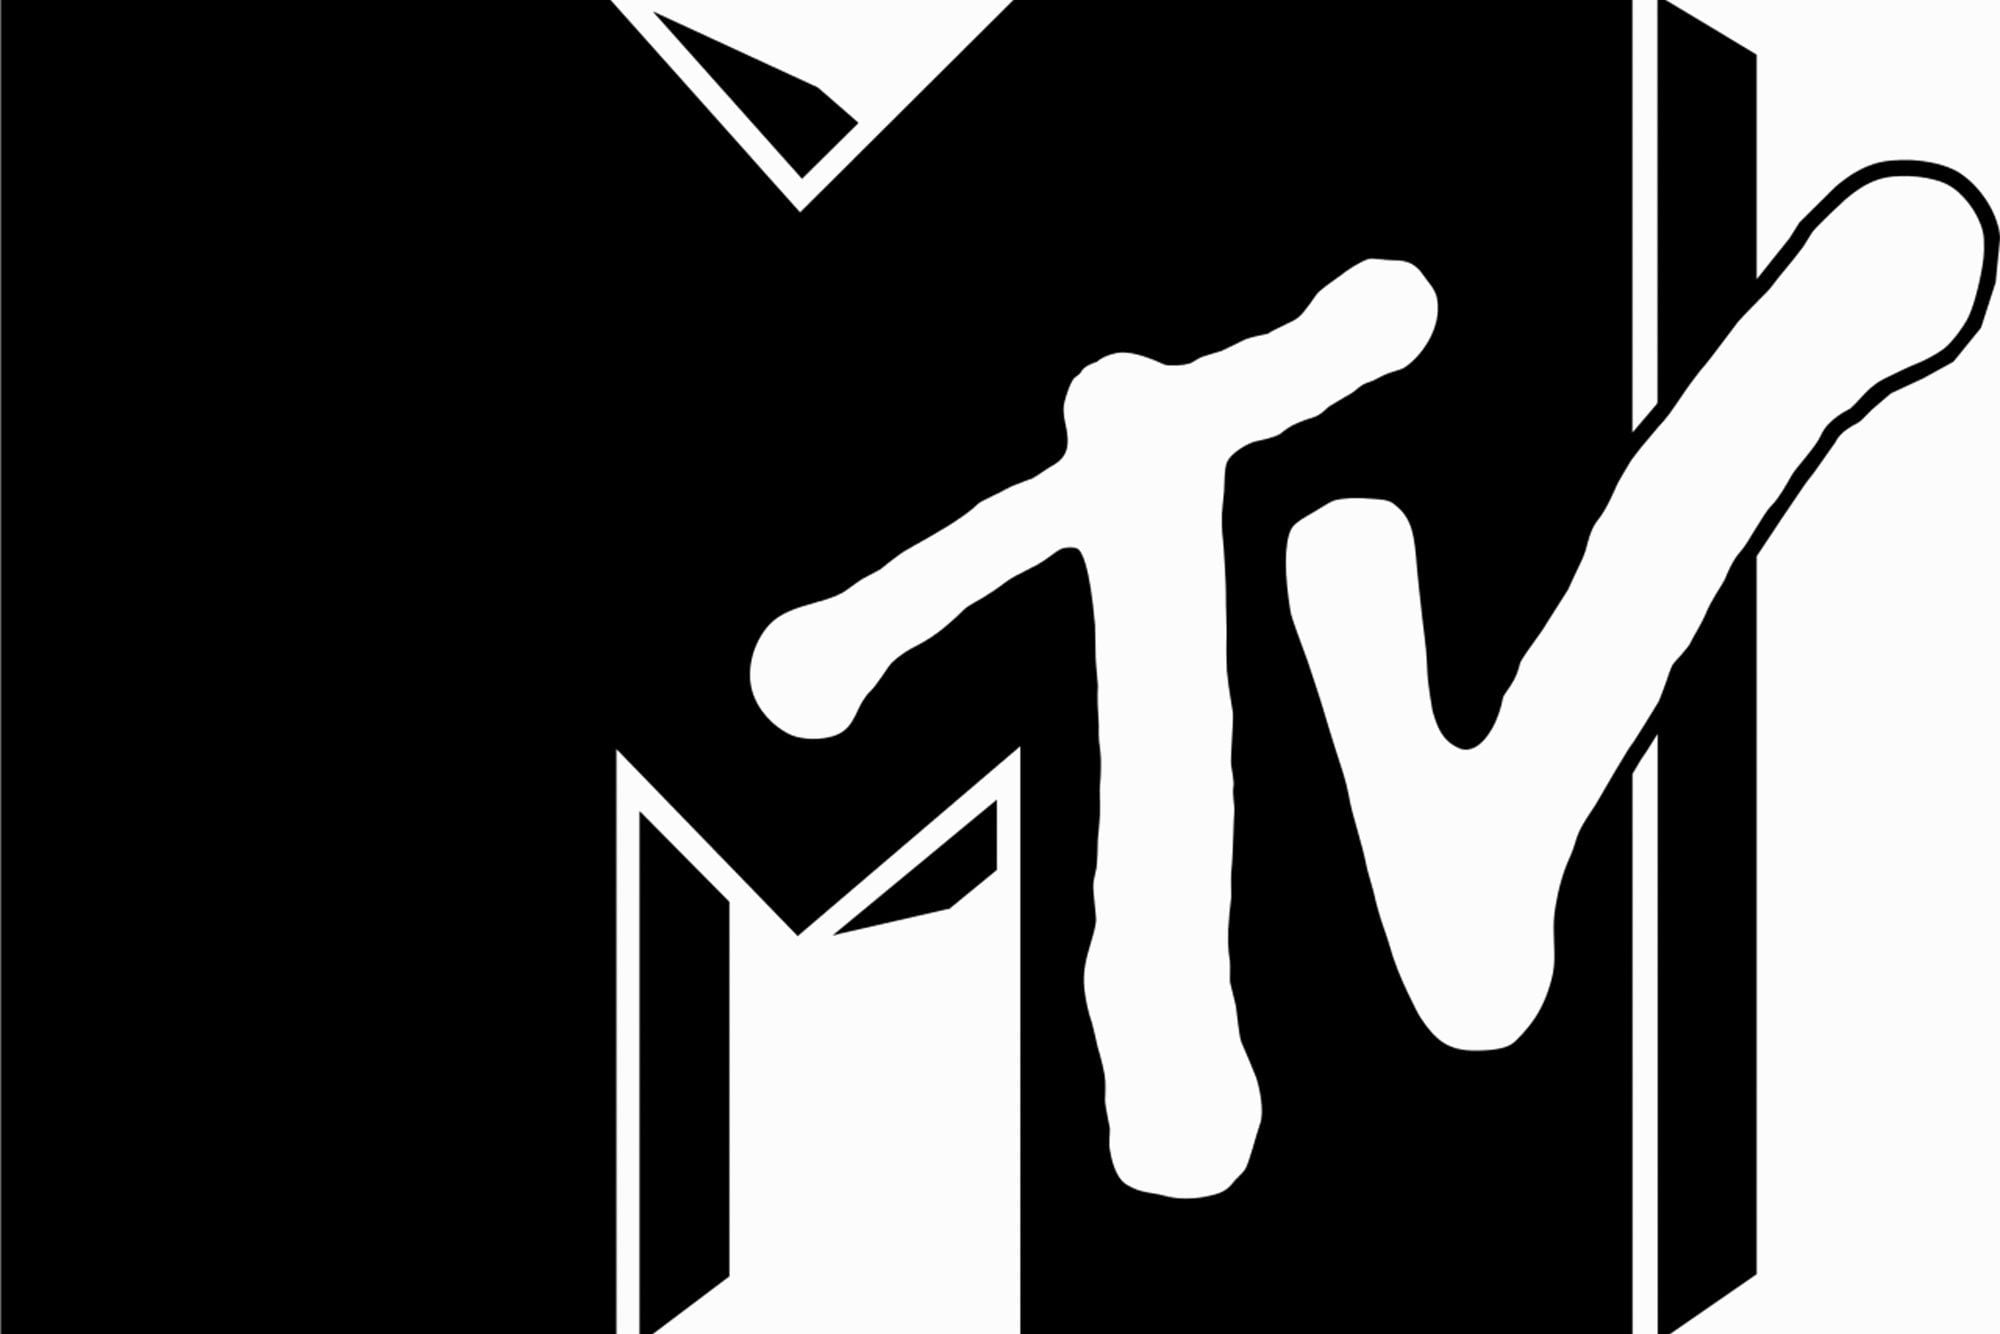 Smells Like MTV: Music Video and the Rise of Grunge